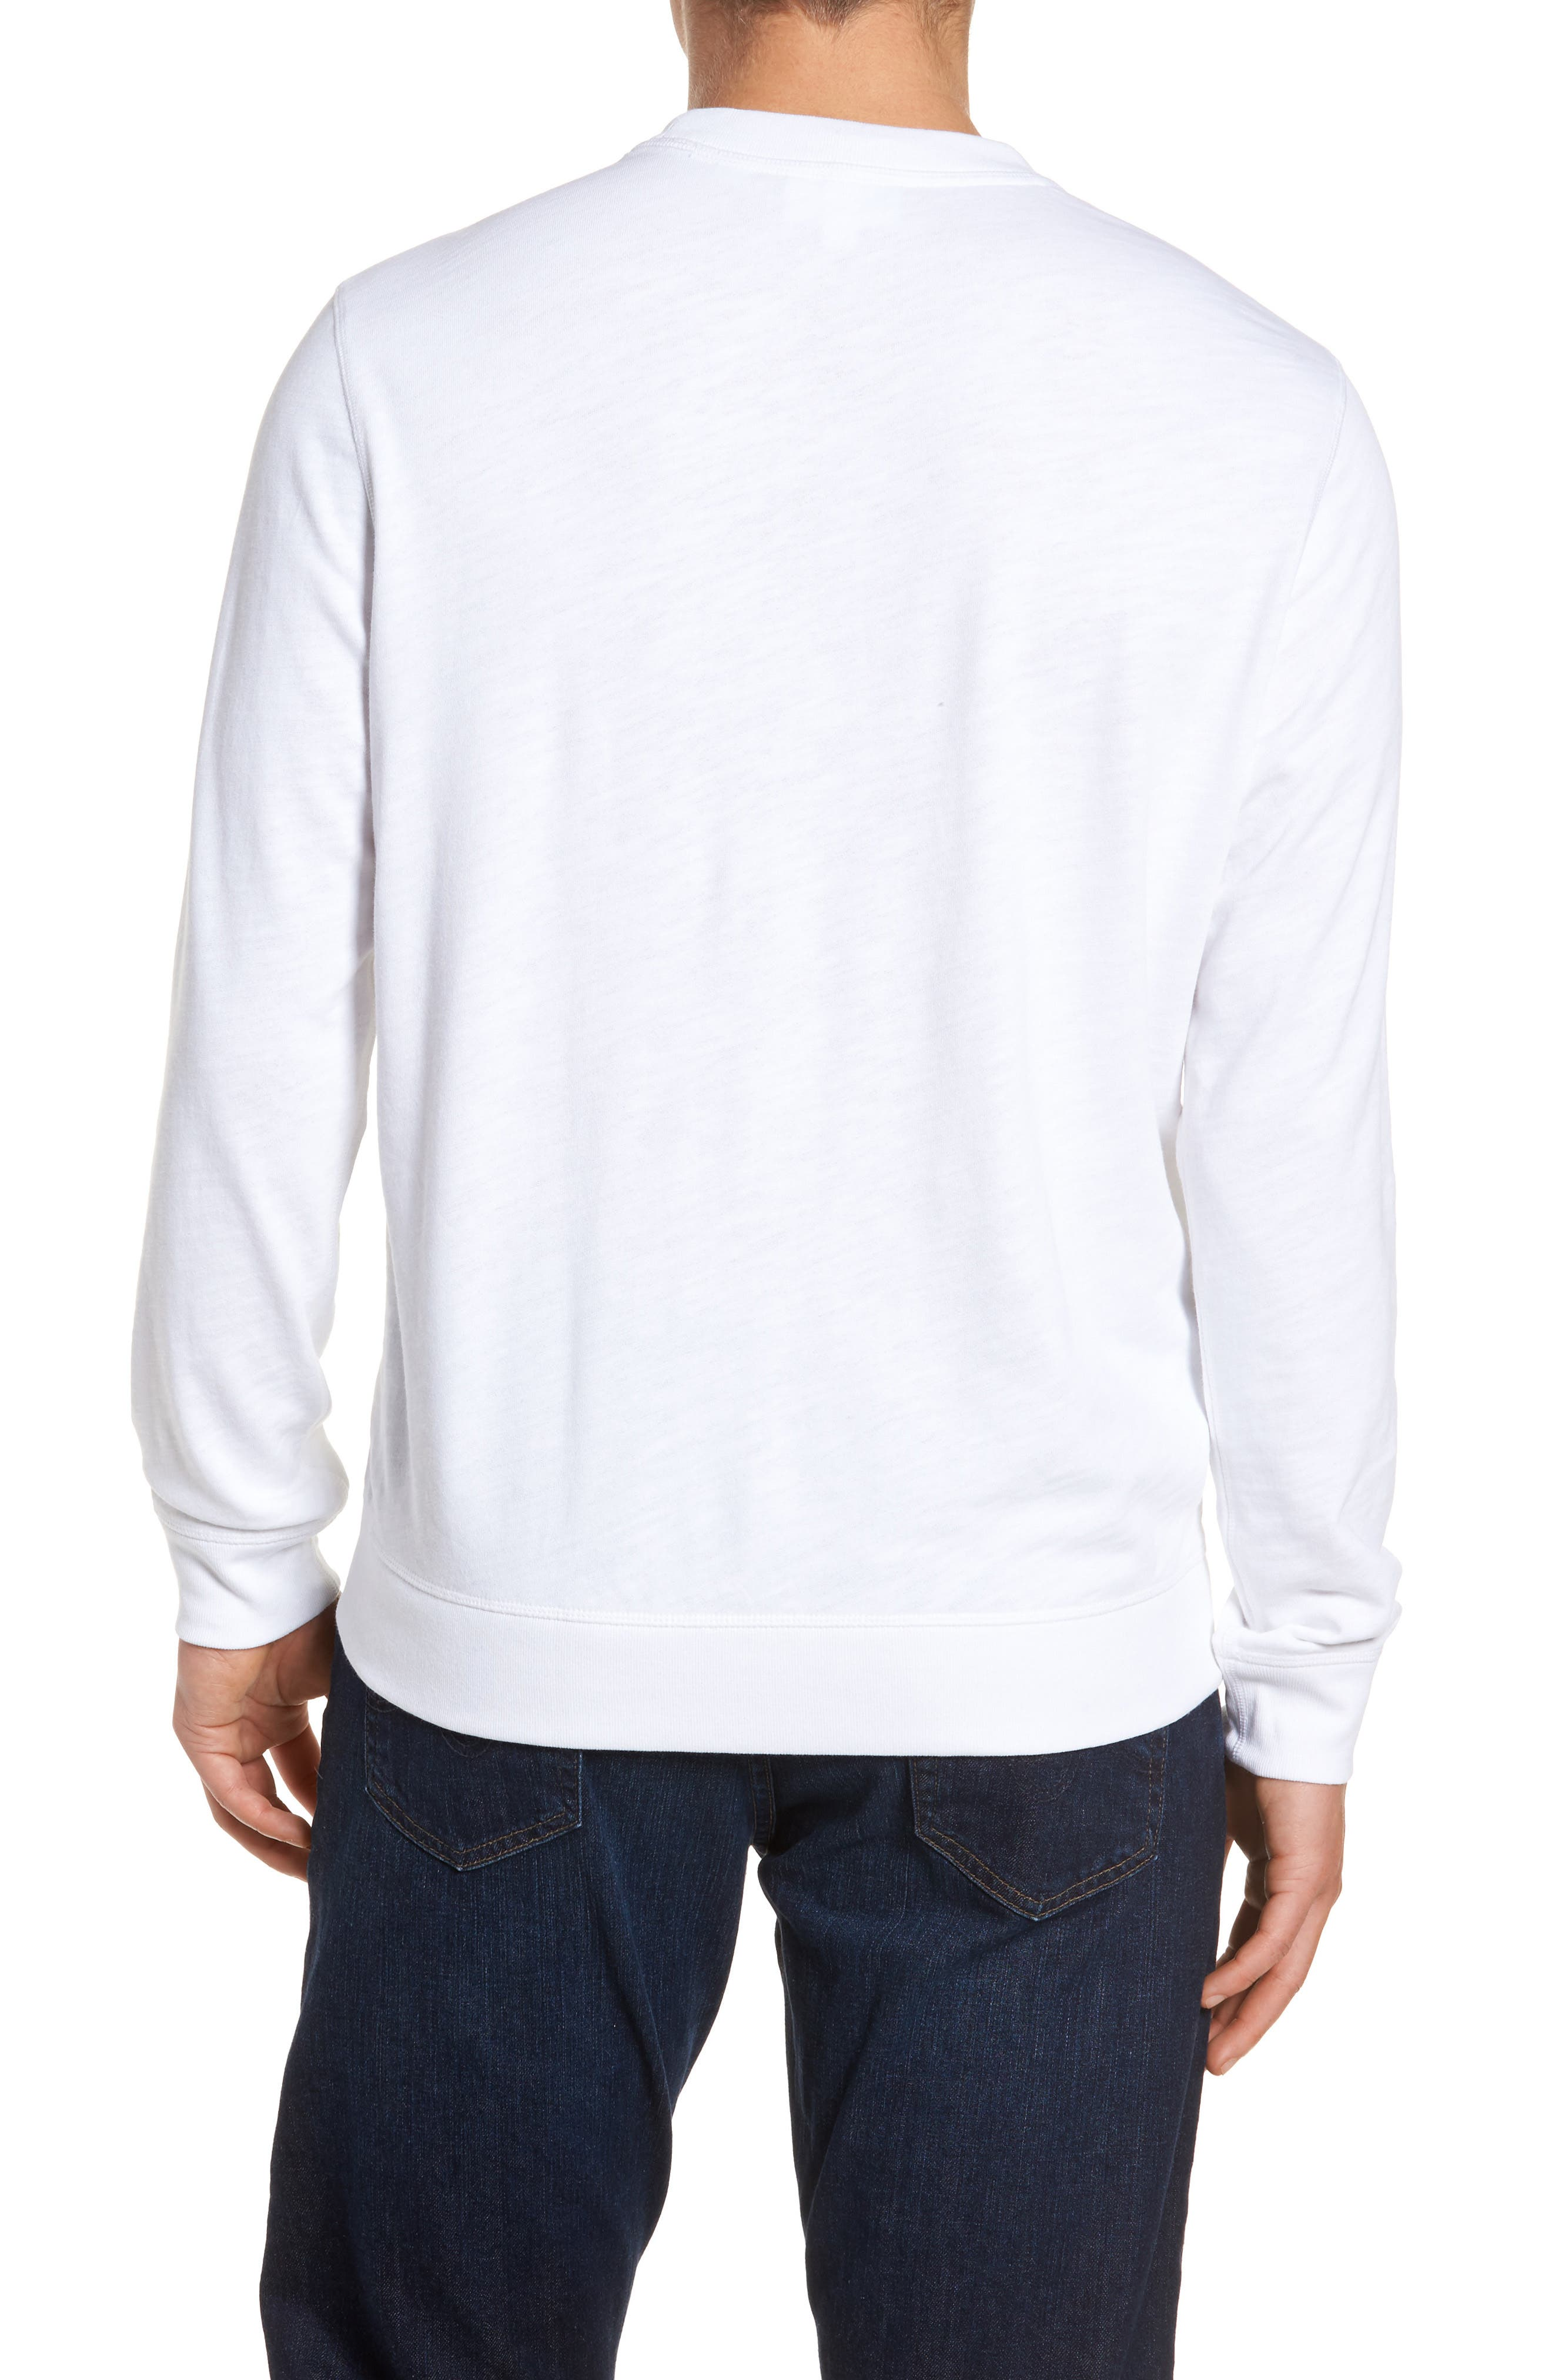 Slim Fit French Terry Sweatshirt,                             Alternate thumbnail 2, color,                             White